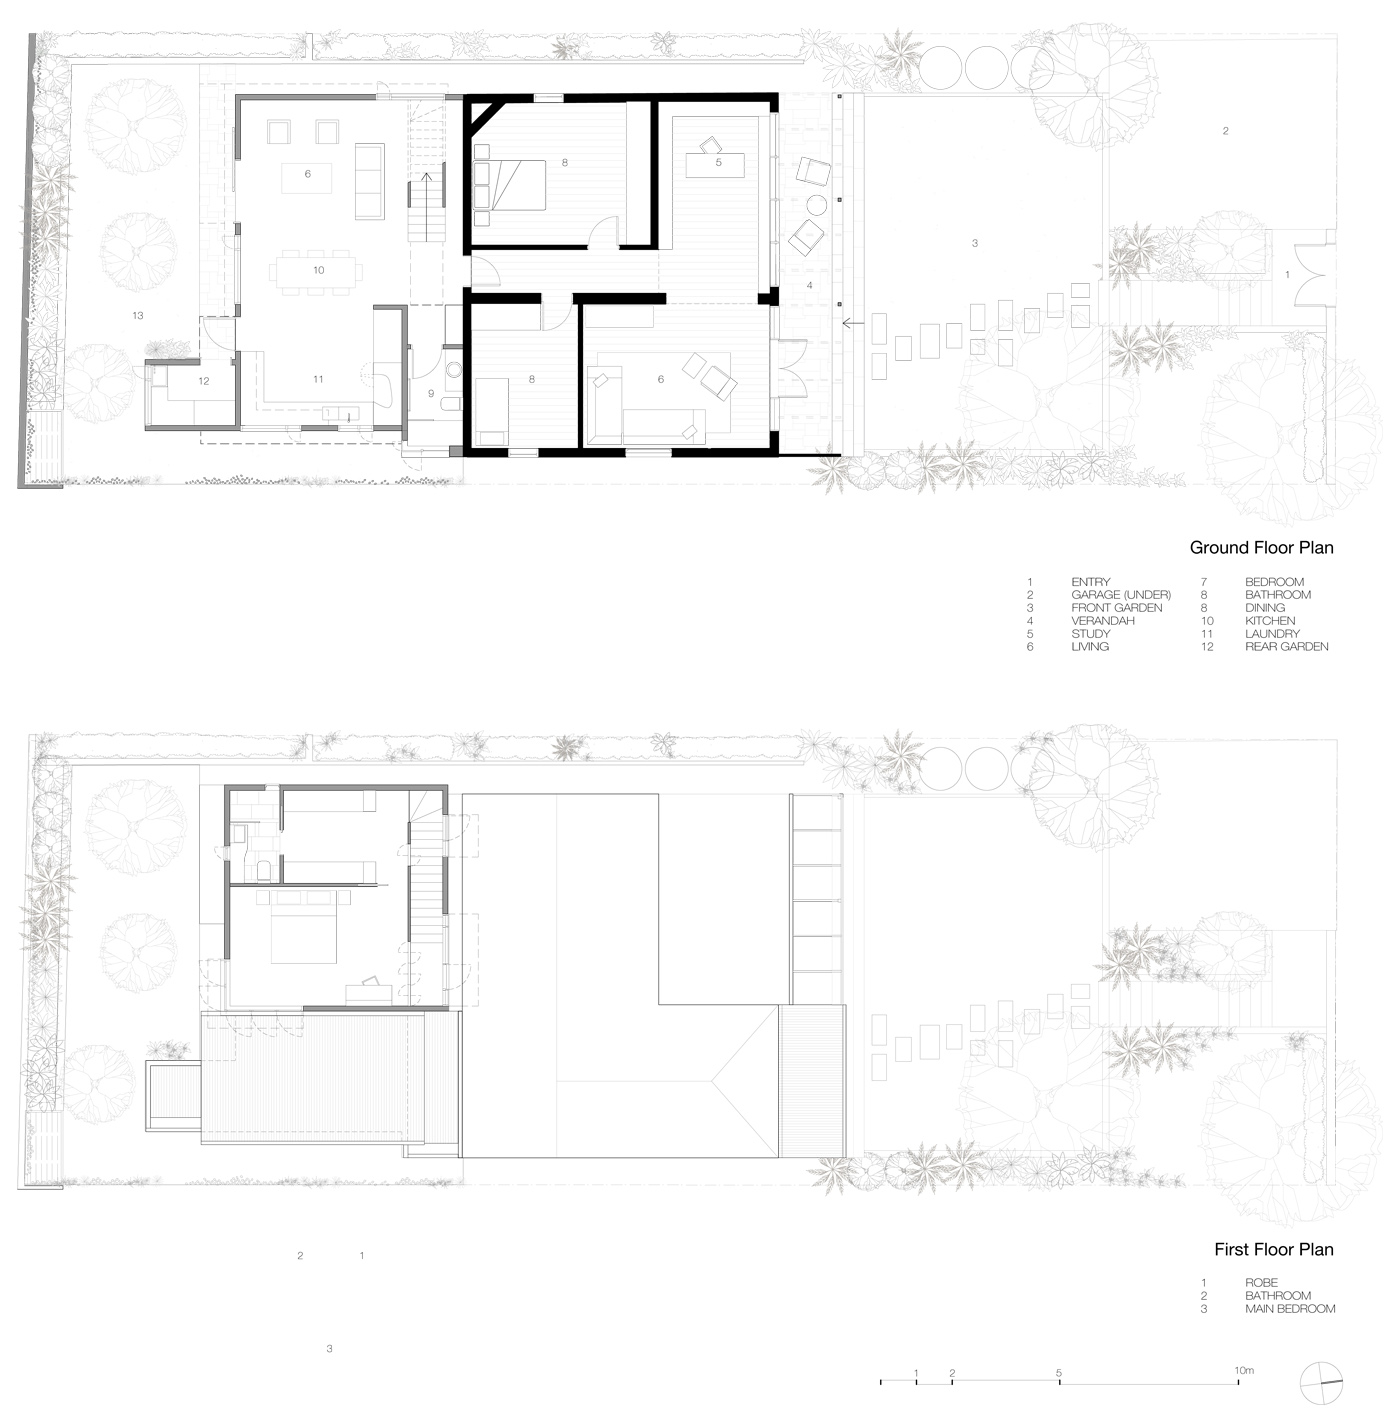 Campbell House by award winning Sydney residential architecture firm Sam Crawford Architects. Floor Plans of the house shows a modest living space in harmony with the landscaping.